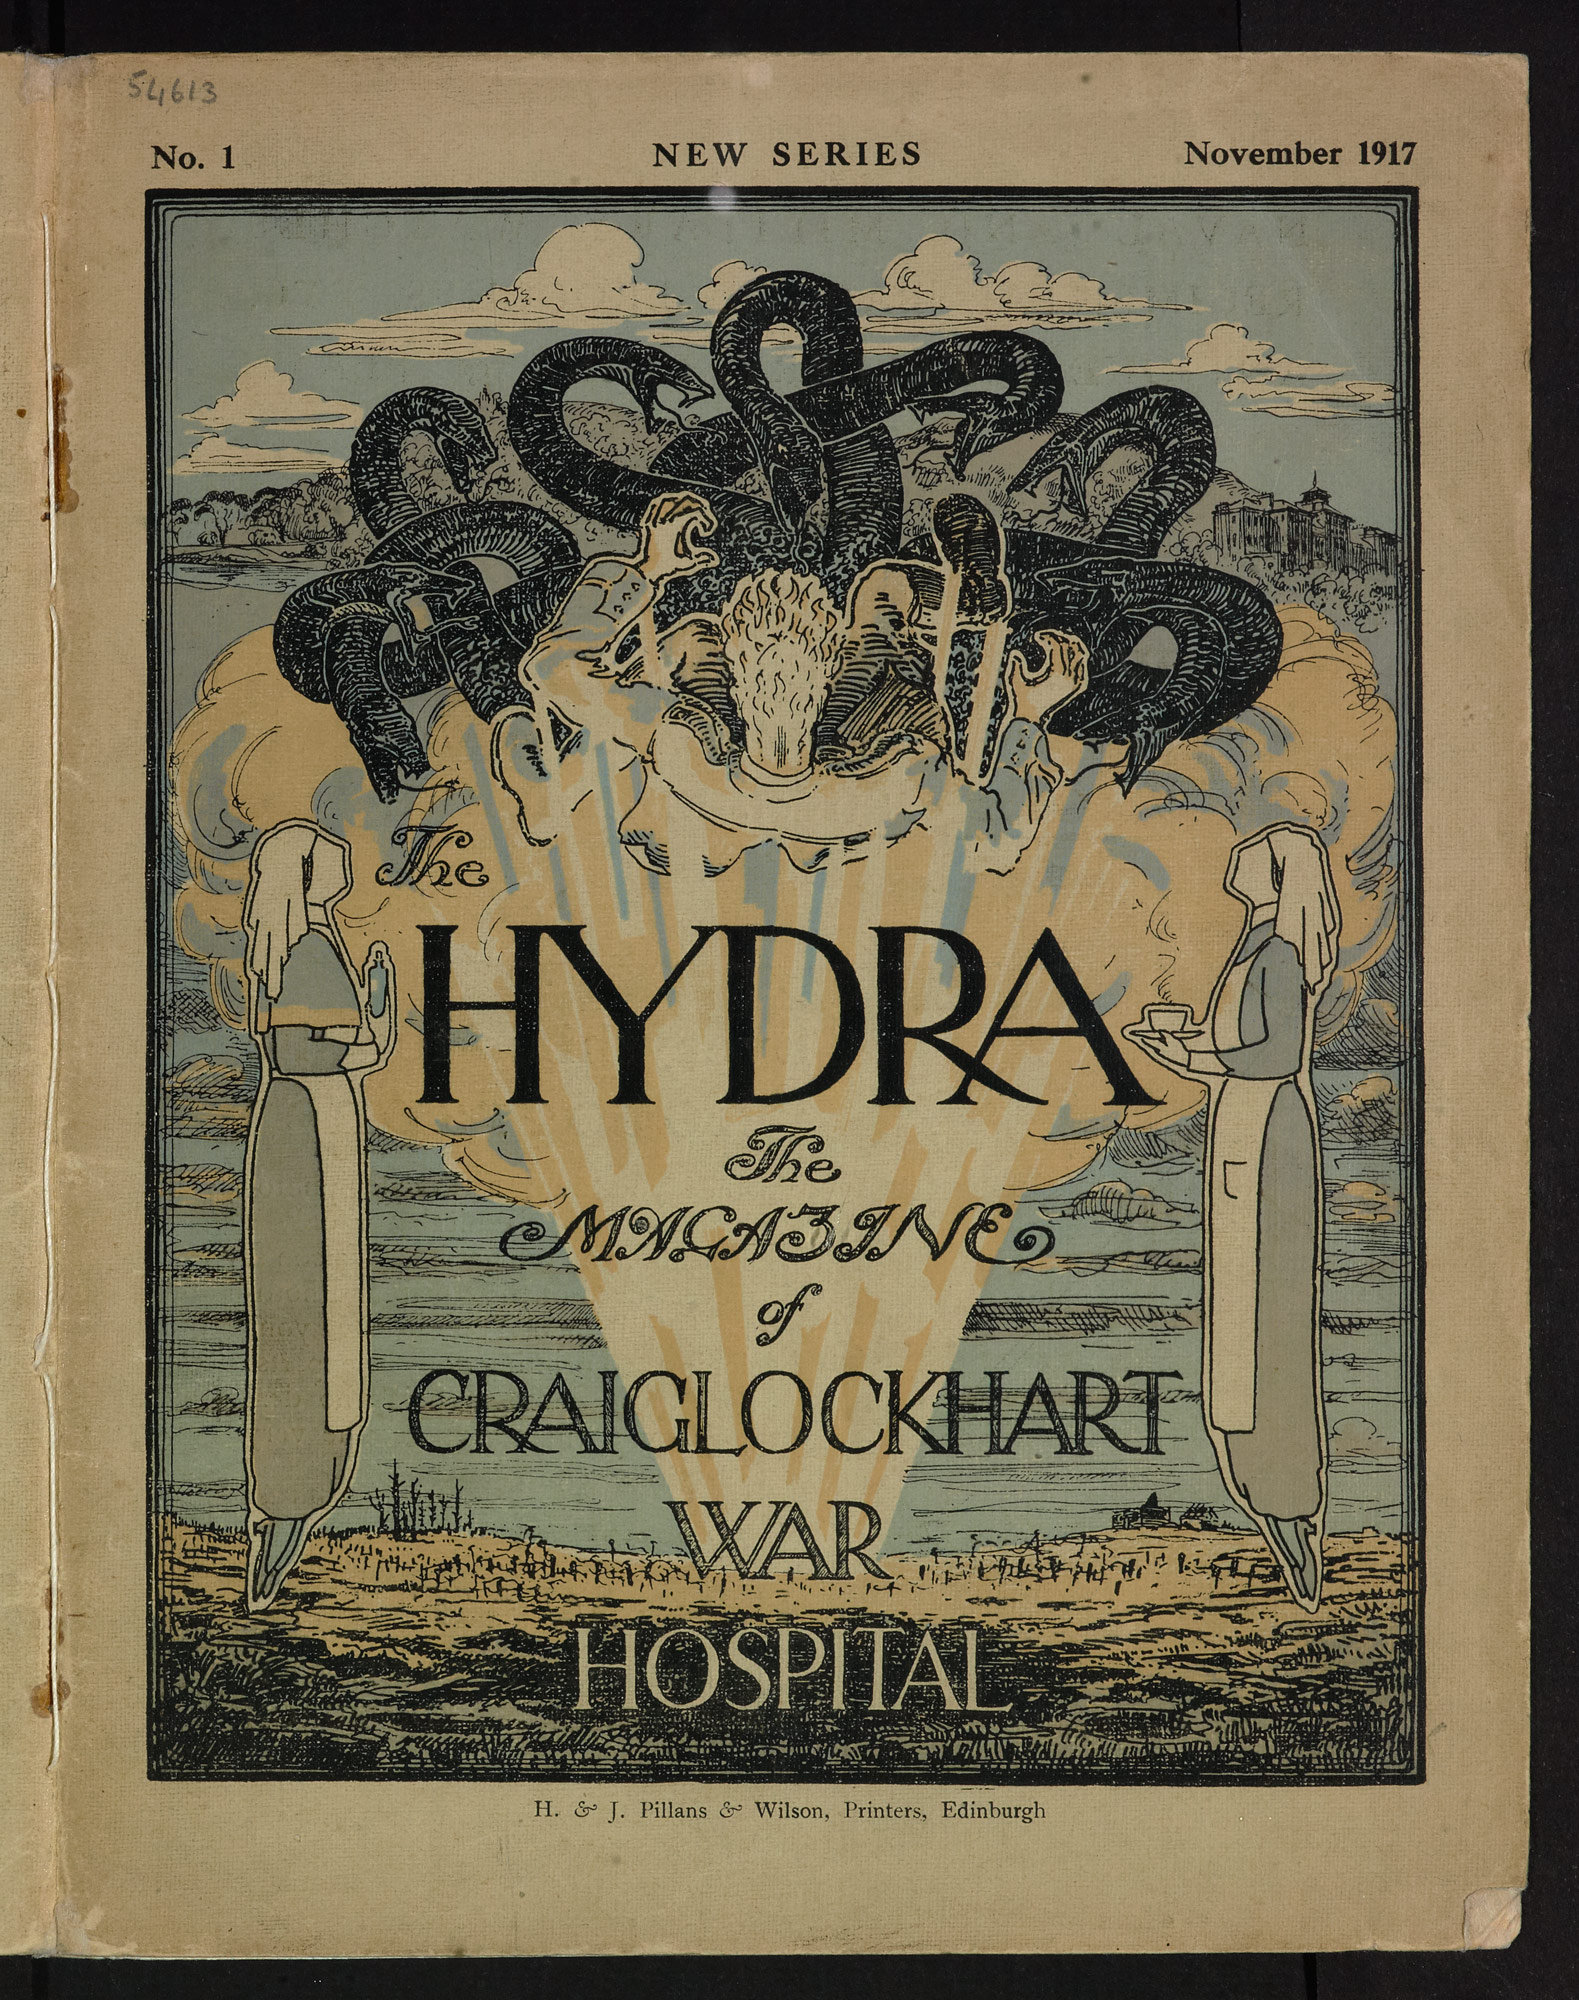 Front cover of The Hydra, November 1917